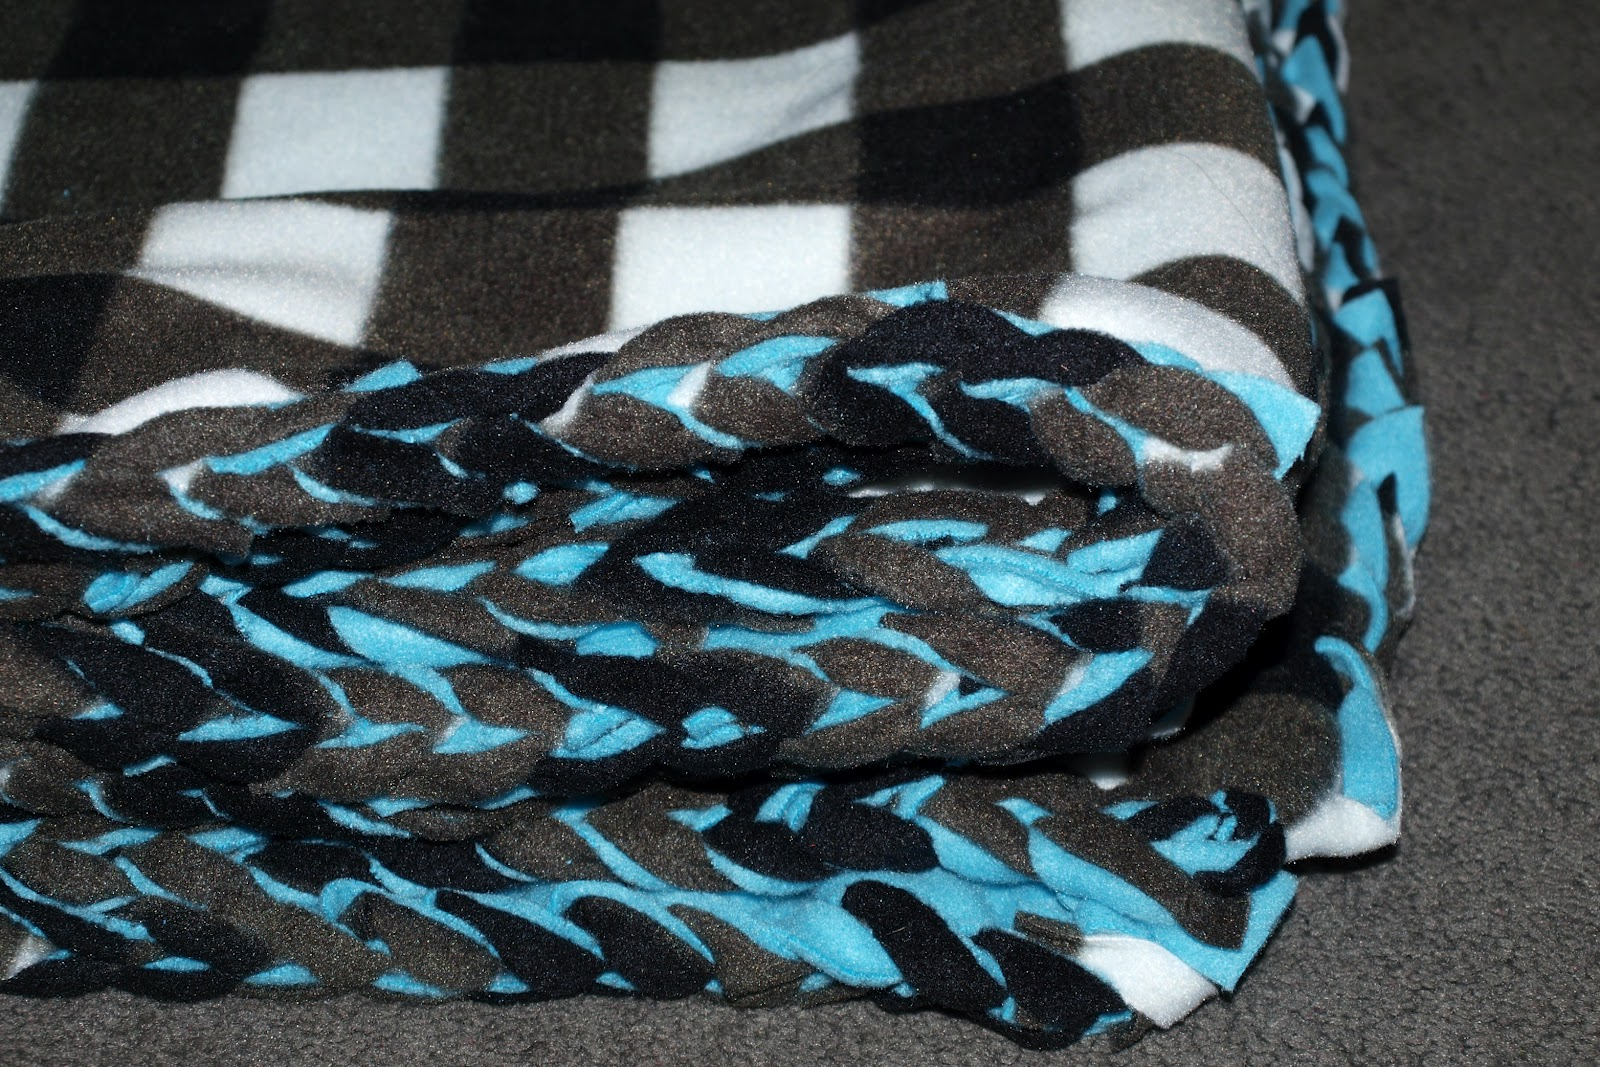 Elemental Carbon: Fleece Blanket with Crocheted Edge // DIY